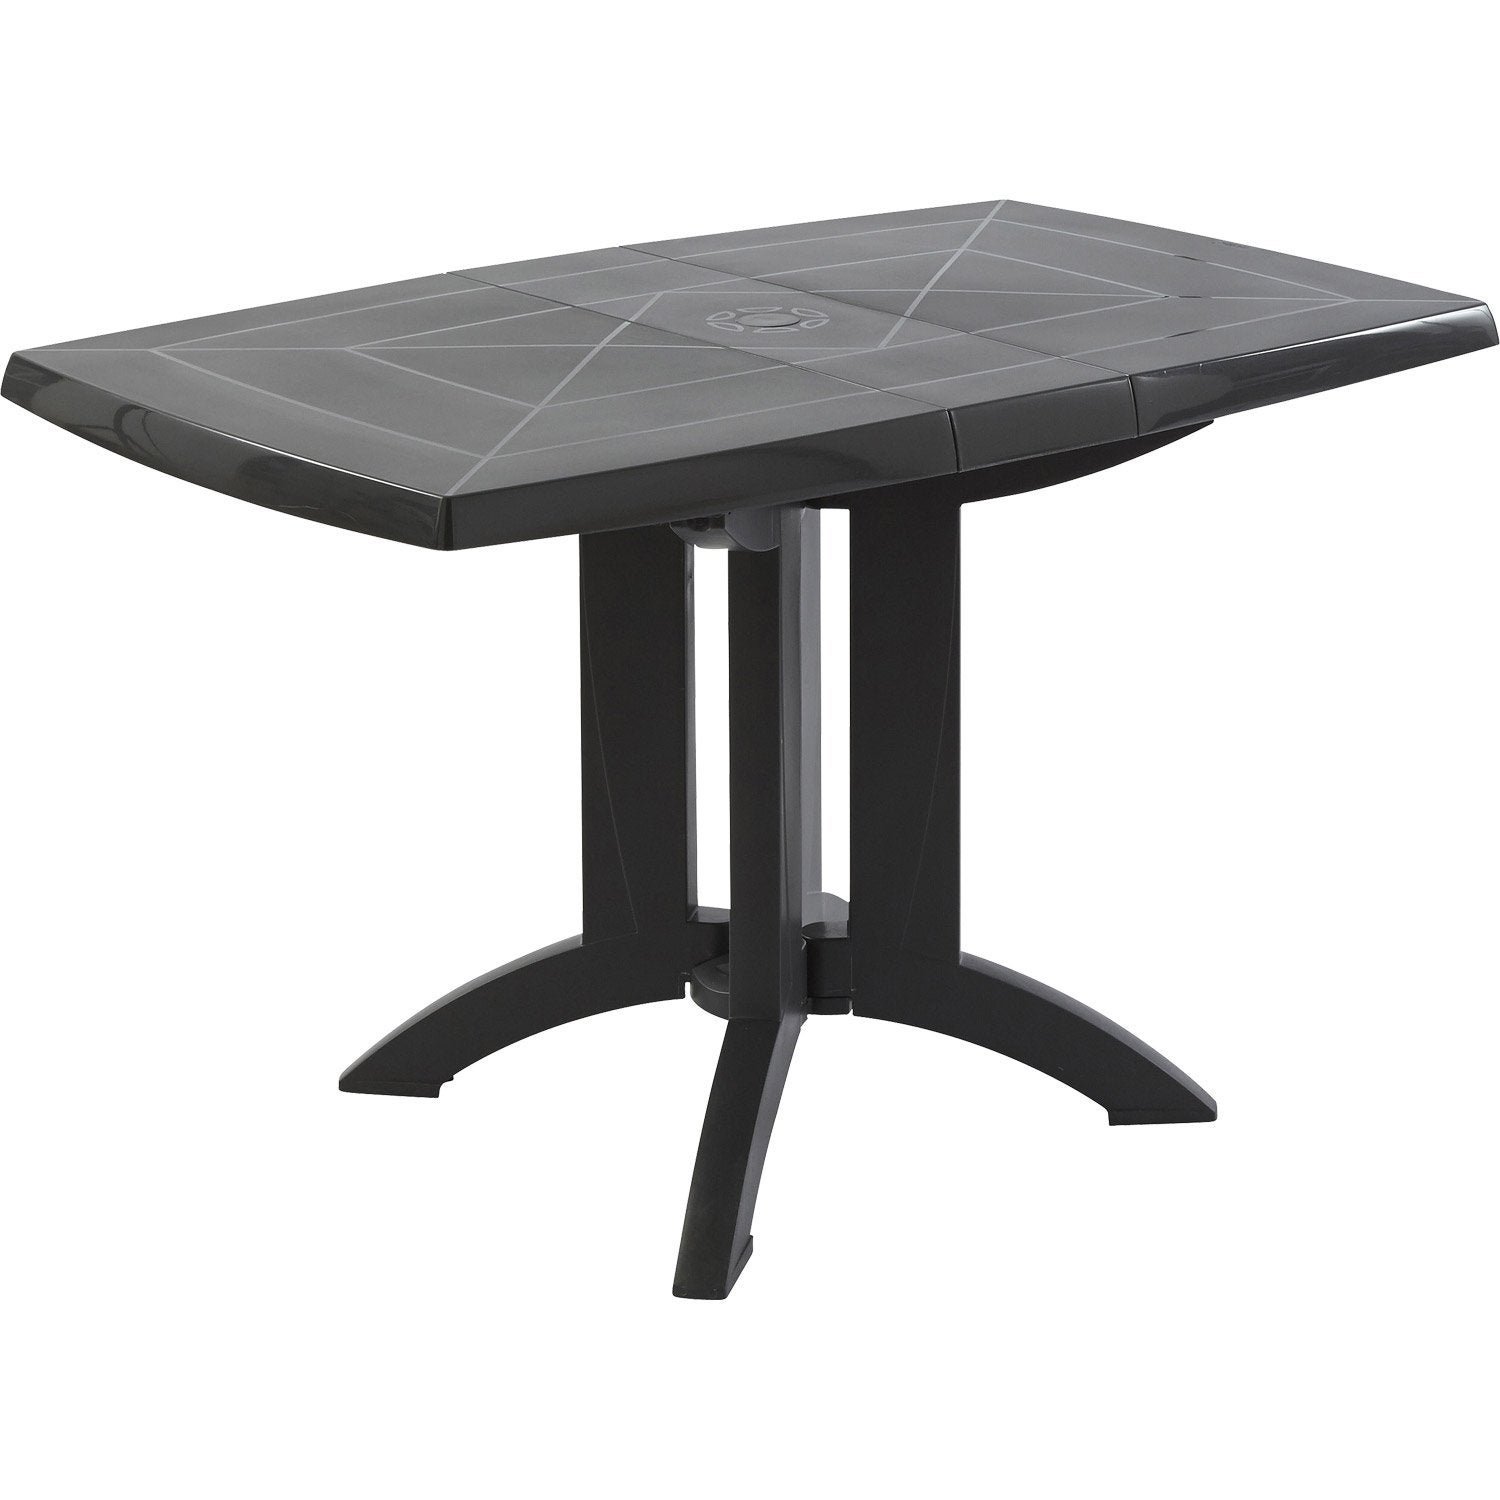 Table de jardin grosfillex v ga rectangulaire anthracite 4 personnes leroy merlin - Photo de table ...